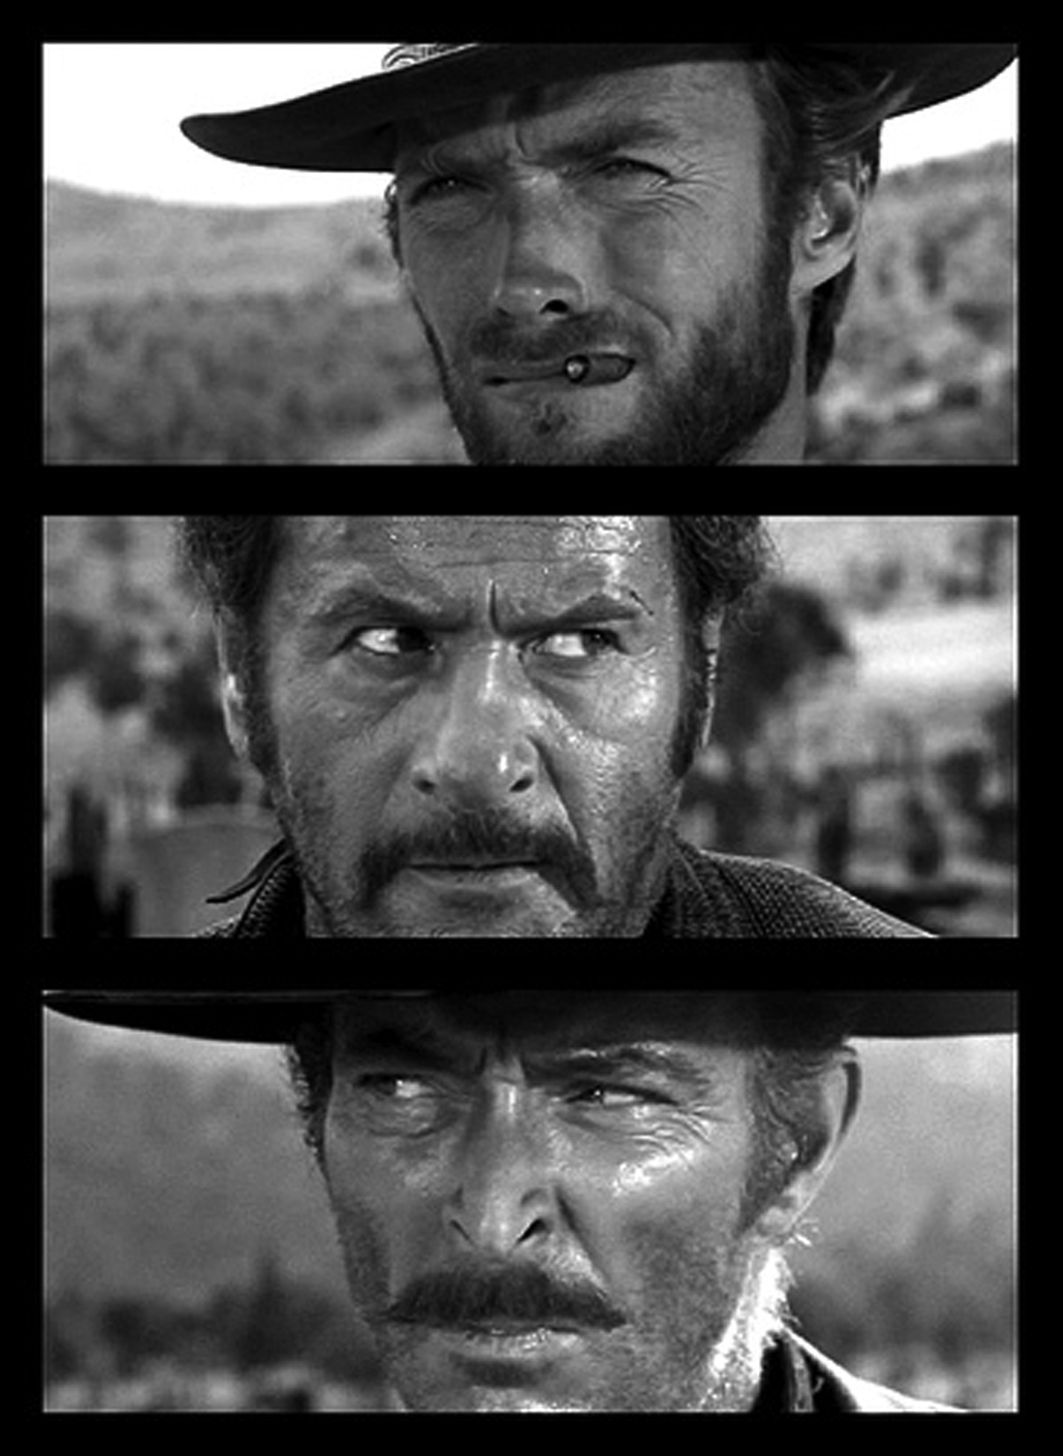 The Good, the Bad, and the Crazy | Sergio leone, Clint eastwood ...